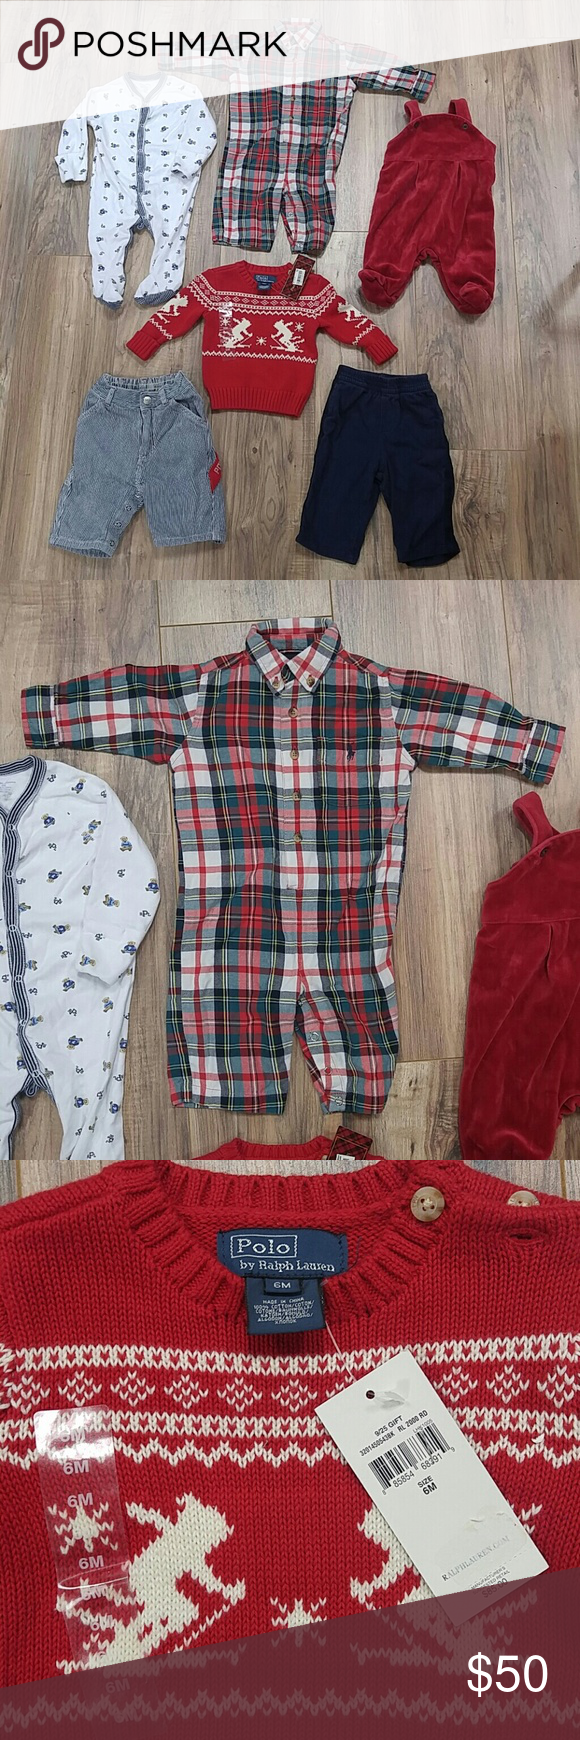 6pc boy 6M Ralph Lauren vintage & new clothing Size 6M infant boy winter clothing all from Ralph Lauren! The MSRP for red sweater (new with tags) was $85. Top left is footed sleeper with teddy bears, plaid 1pc outfit, velvet overalls with feet, striped carpenter jeans, and comfy navy blue pants. No flaws found. Ralph Lauren Matching Sets